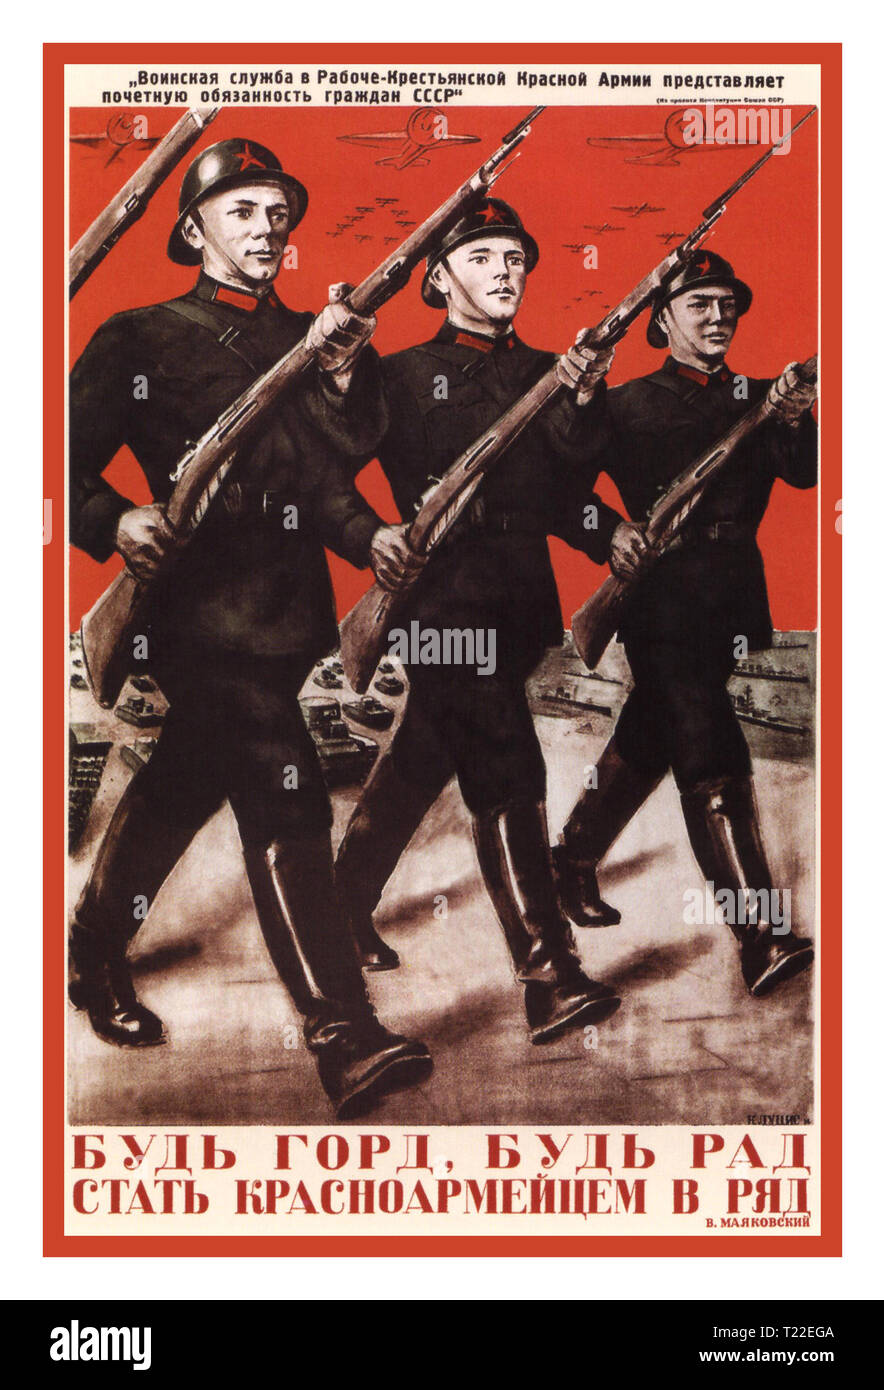 Vintage WW2 Russian Propaganda Poster Great Patriotic War (Posters of USSR) Russian WW2 1930's 'Be glad and take pride to stand in rank, with Red Army soldiers by your side' Vintage Soviet Poster about the Great Patriotic War in the USSR and the Red Army with the victory over fascist Nazi Germany. Gustav Klutsis colour lithograph - Stock Image